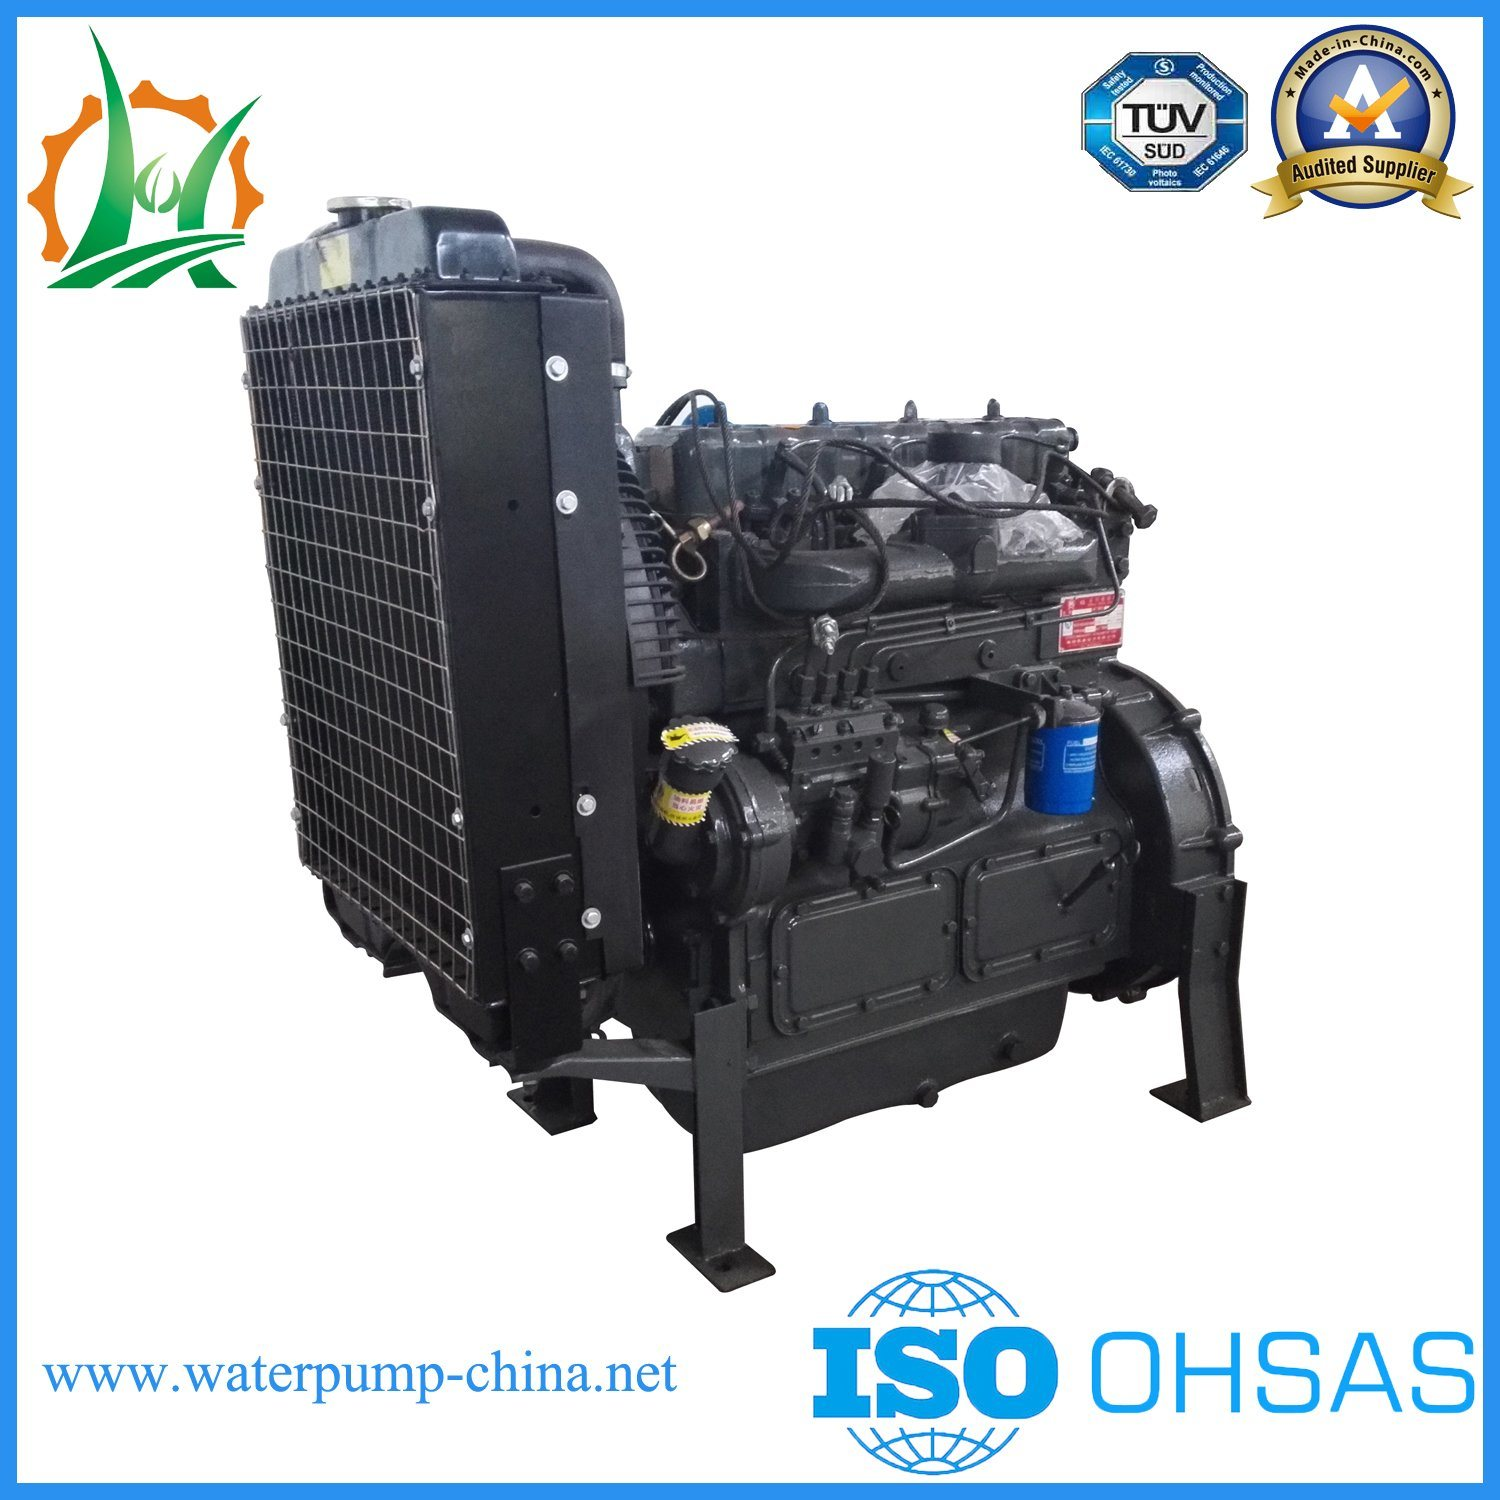 P Type Non-Clogging Self-Priming Sewage Pump